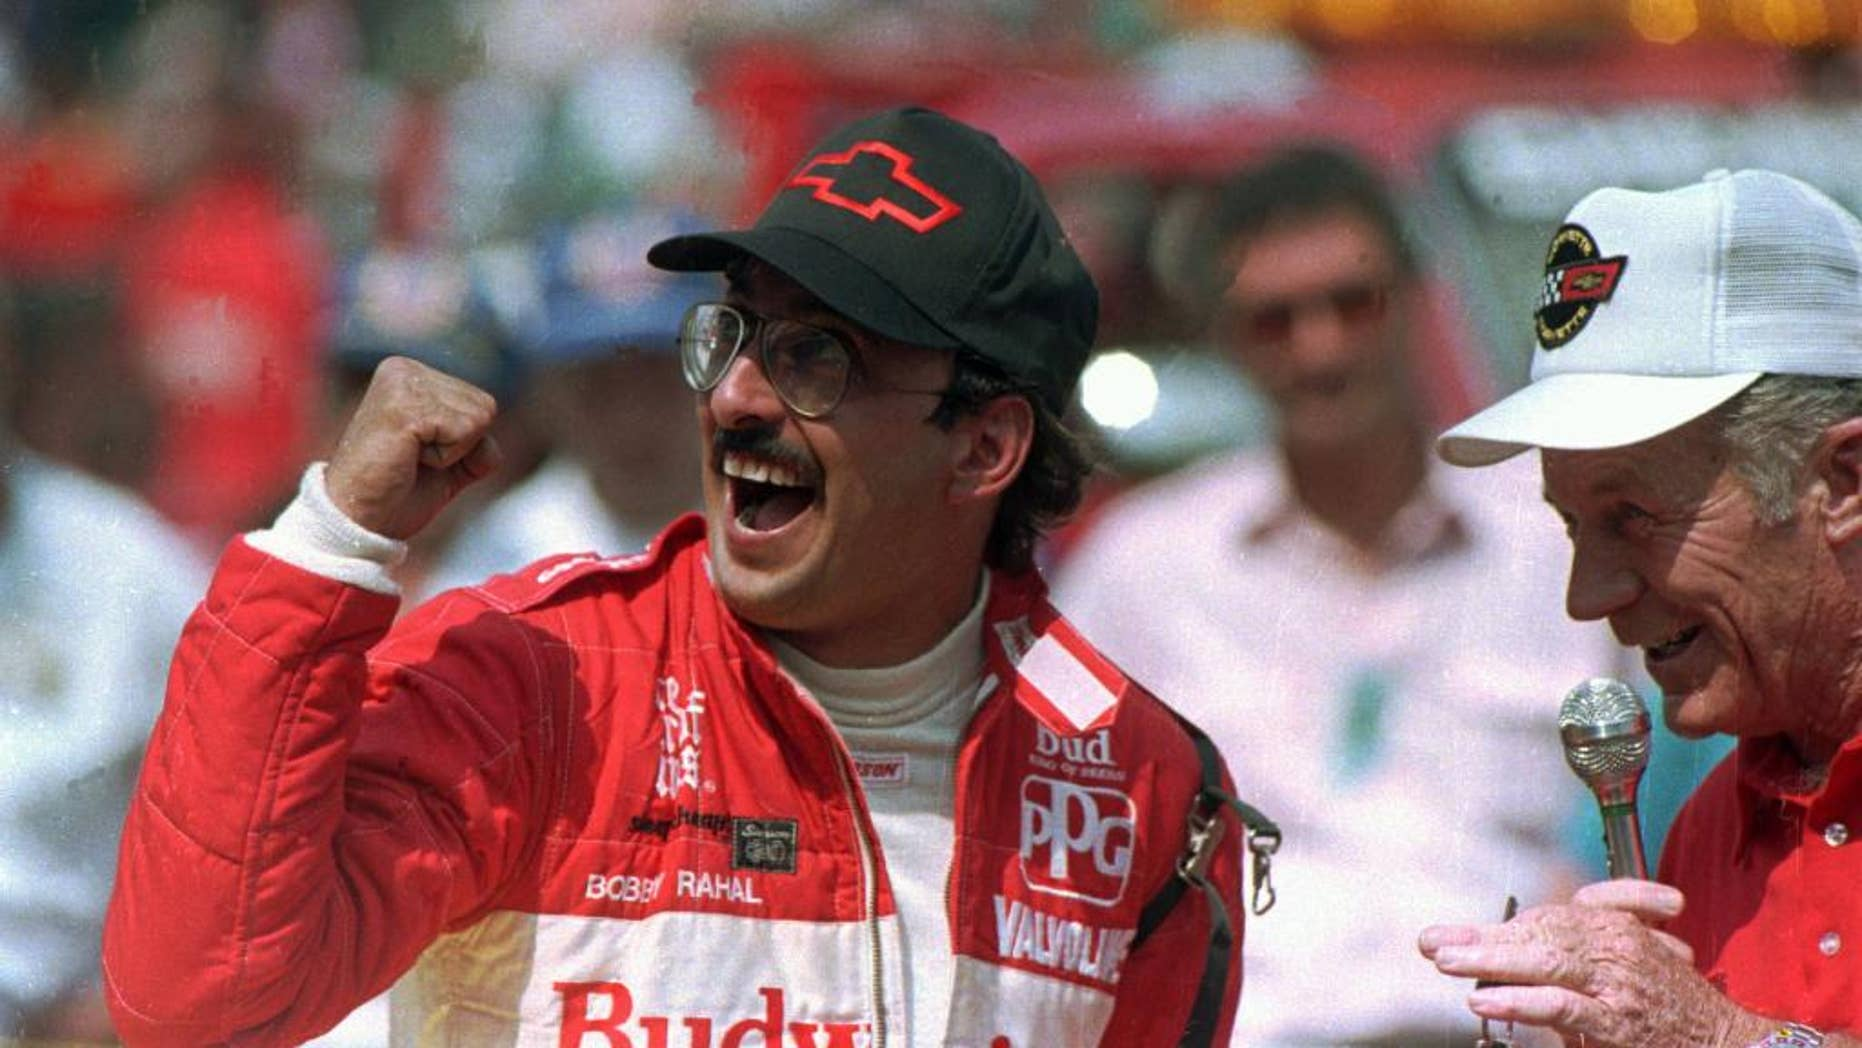 FILE - In this May 31, 1986 file photo, Bobby Rahal reacts after accepting the keys to the Chevrolet Corvette pace car after winning the 70th running of the Indianapolis 500 auto race in Indianapolis, Ind. (AP Photo/File)